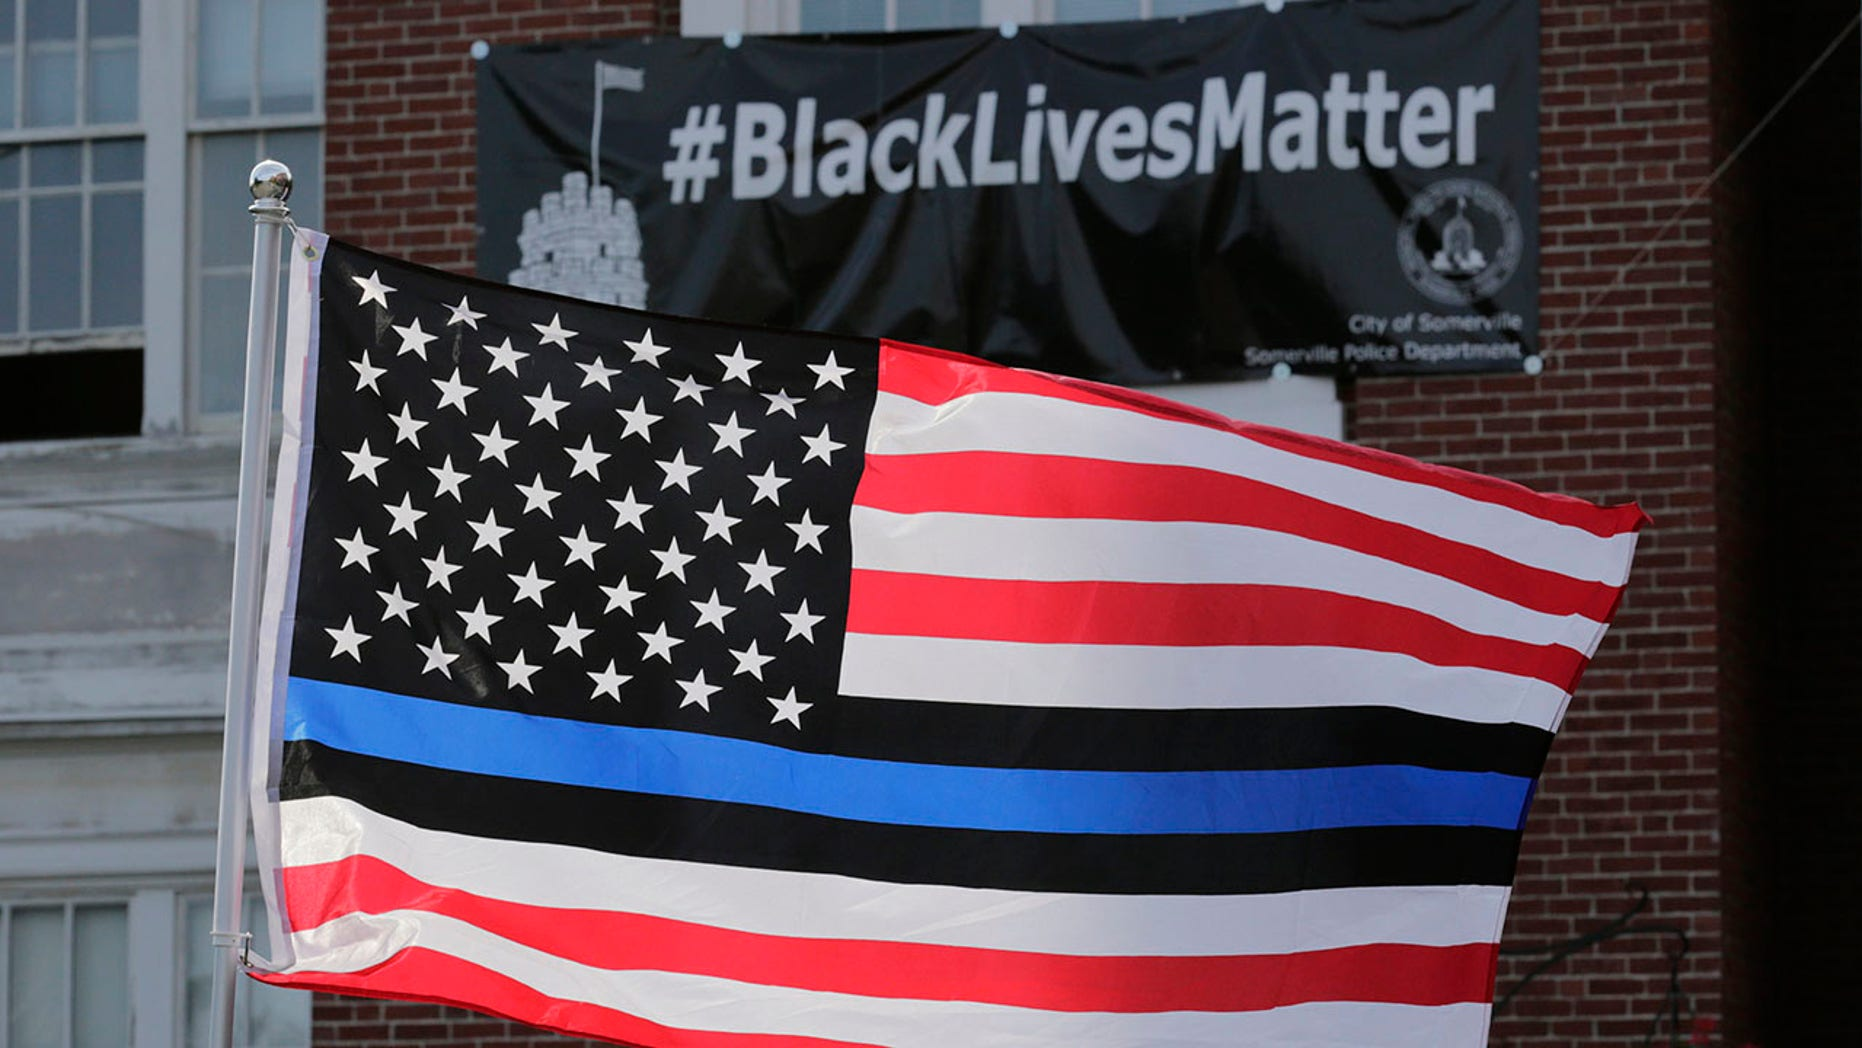 Westlake Legal Group AP19110614393227 Dispute over pro-police 'Blue Lives Matter' flag results in $100G settlement for county employee who sued fox-news/us/us-regions/west/oregon fox-news/us/crime/police-and-law-enforcement fox news fnc/us fnc Dom Calicchio article 18479d4f-6837-54a6-83bf-ff6fd40fd06e